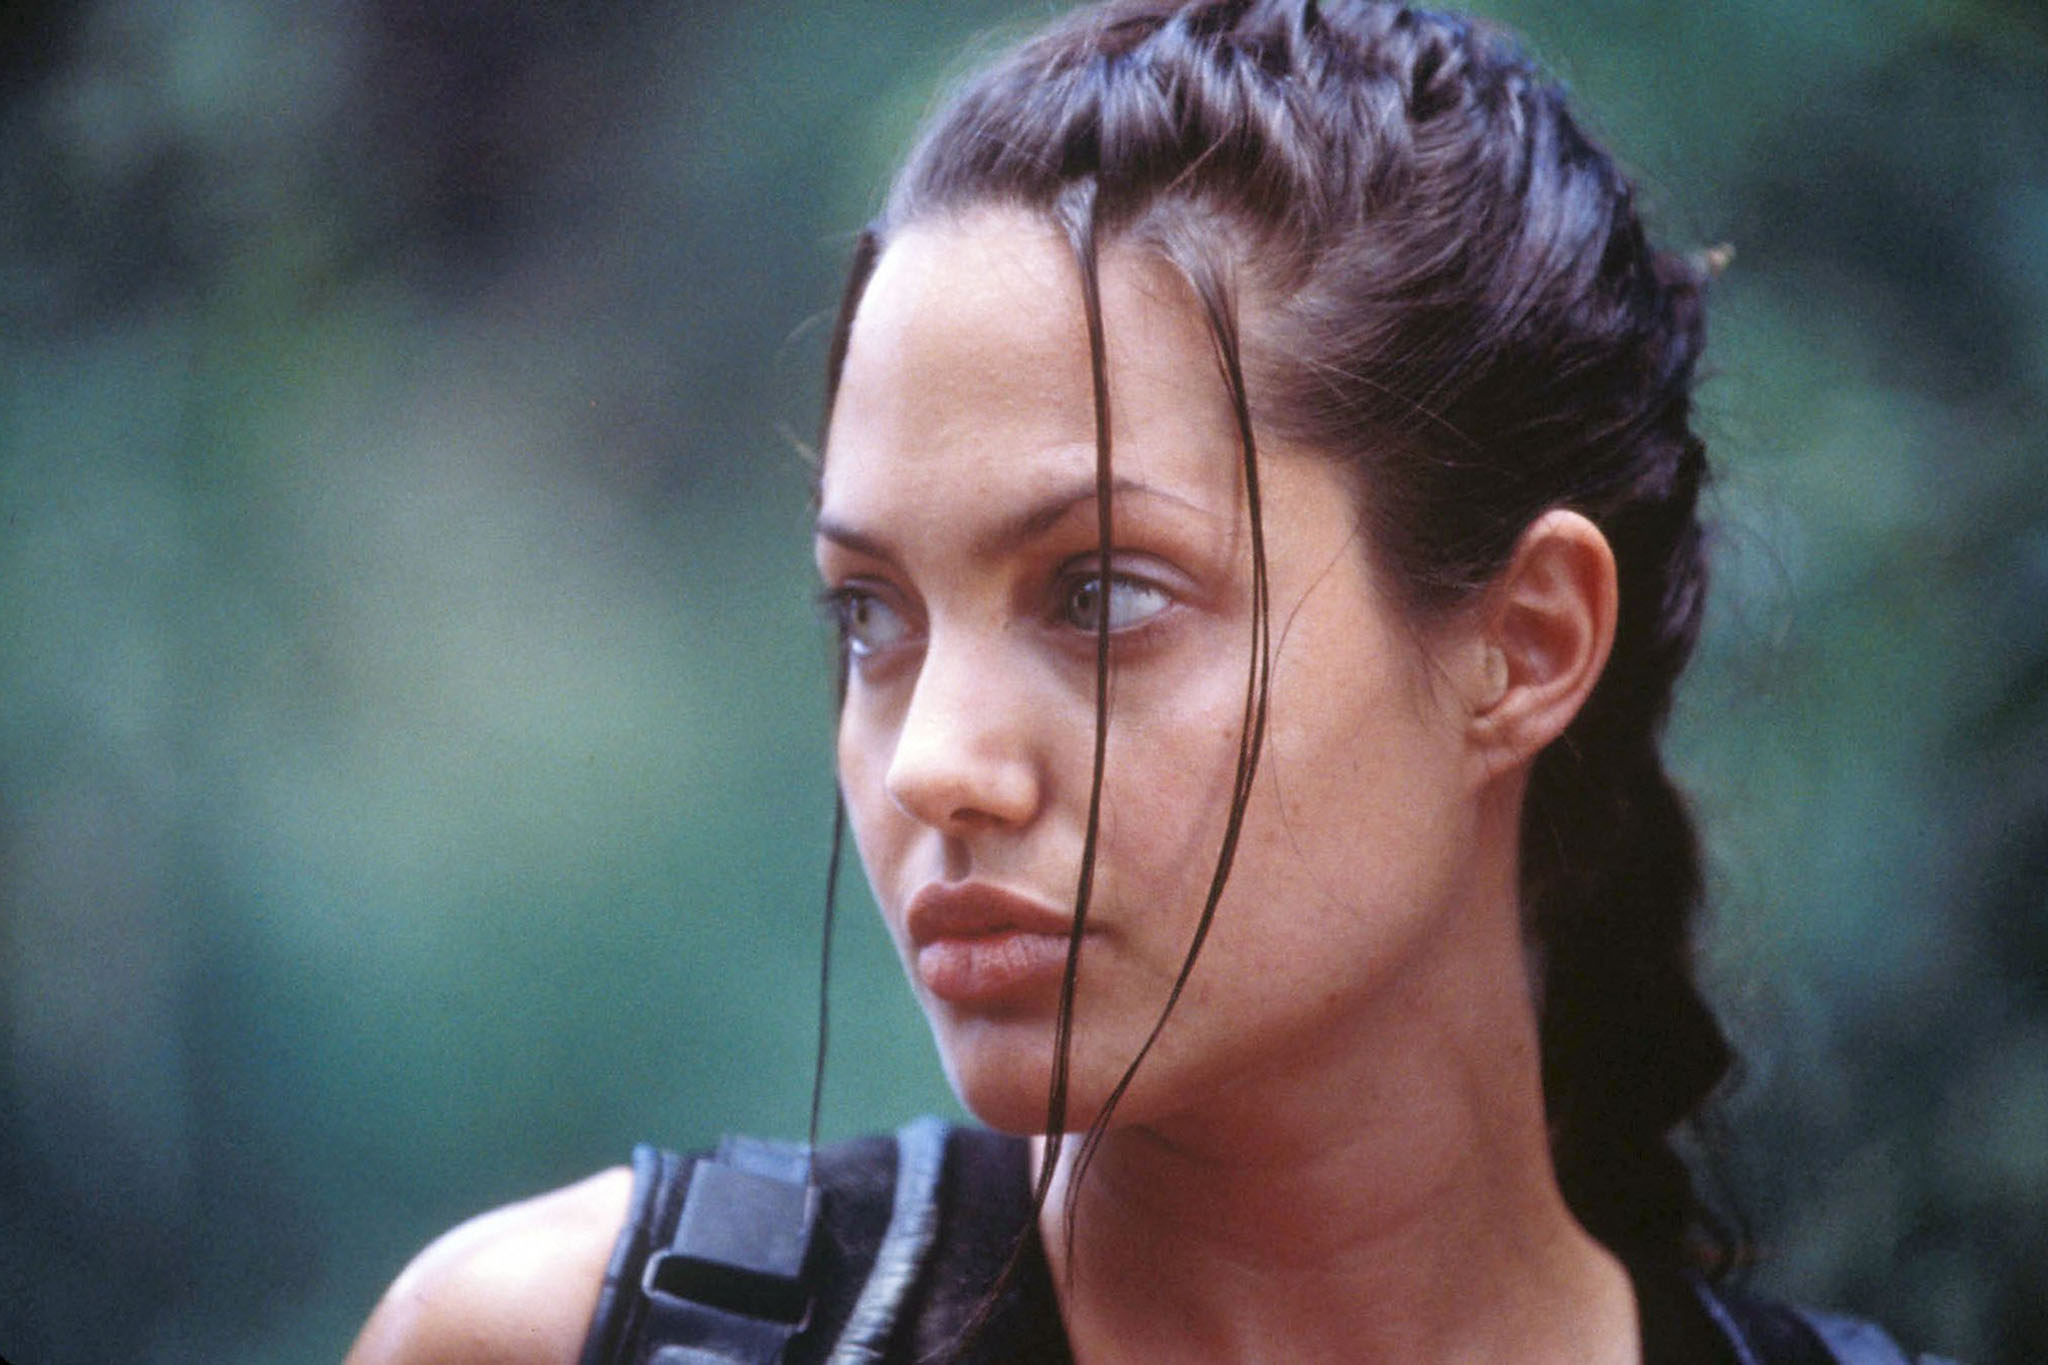 Best Angelina Jolie Movies From Dramas To Action Films - The 10 most emotional movie scenes of all time